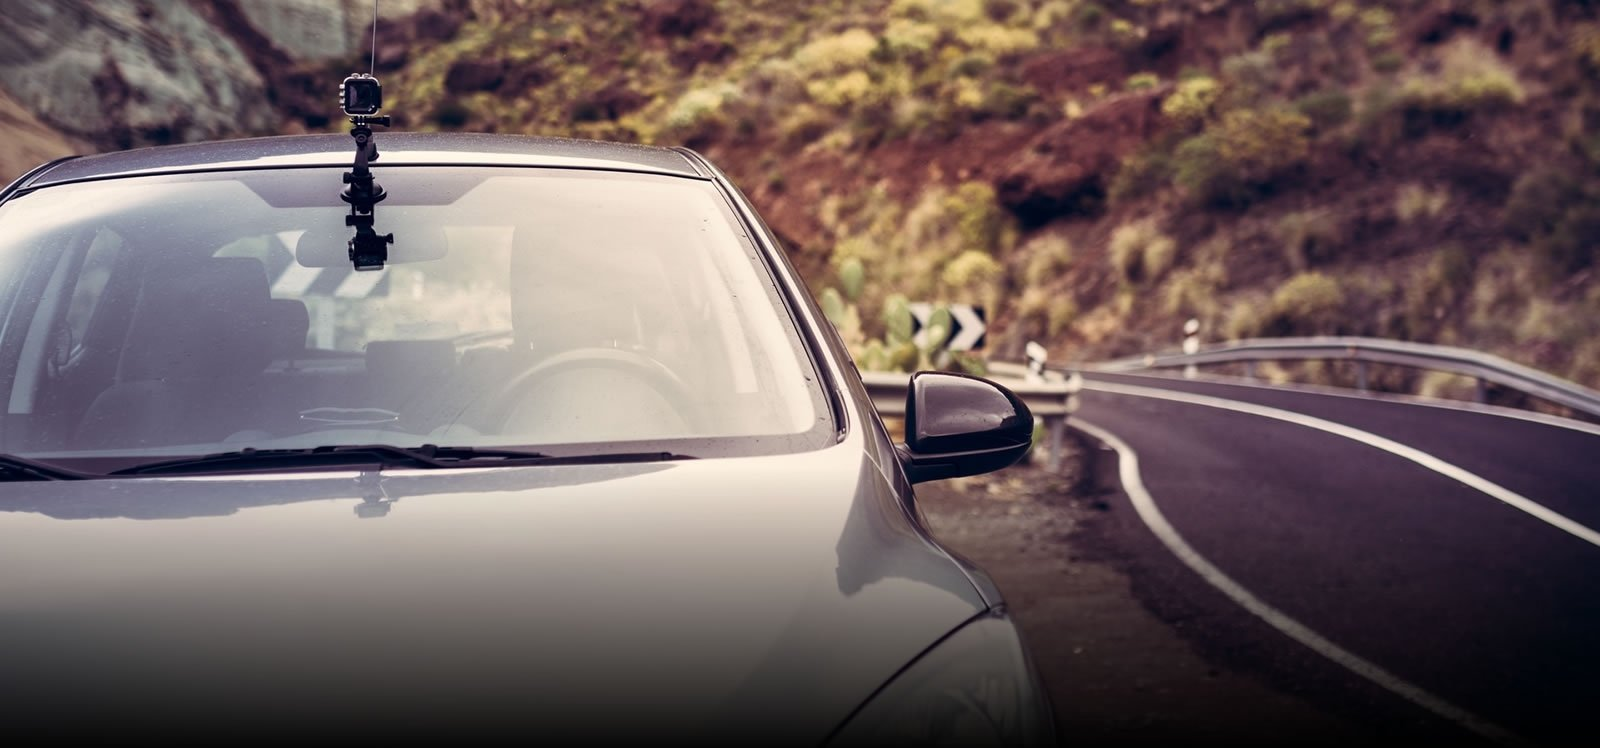 surveillance vehicles uk